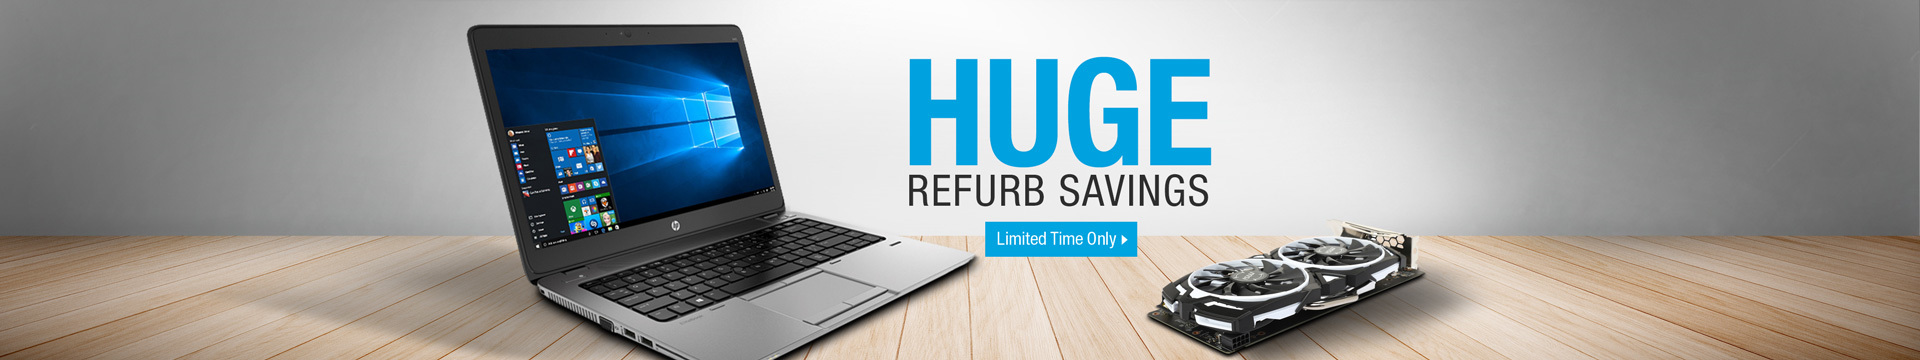 Huge Refurb Savings